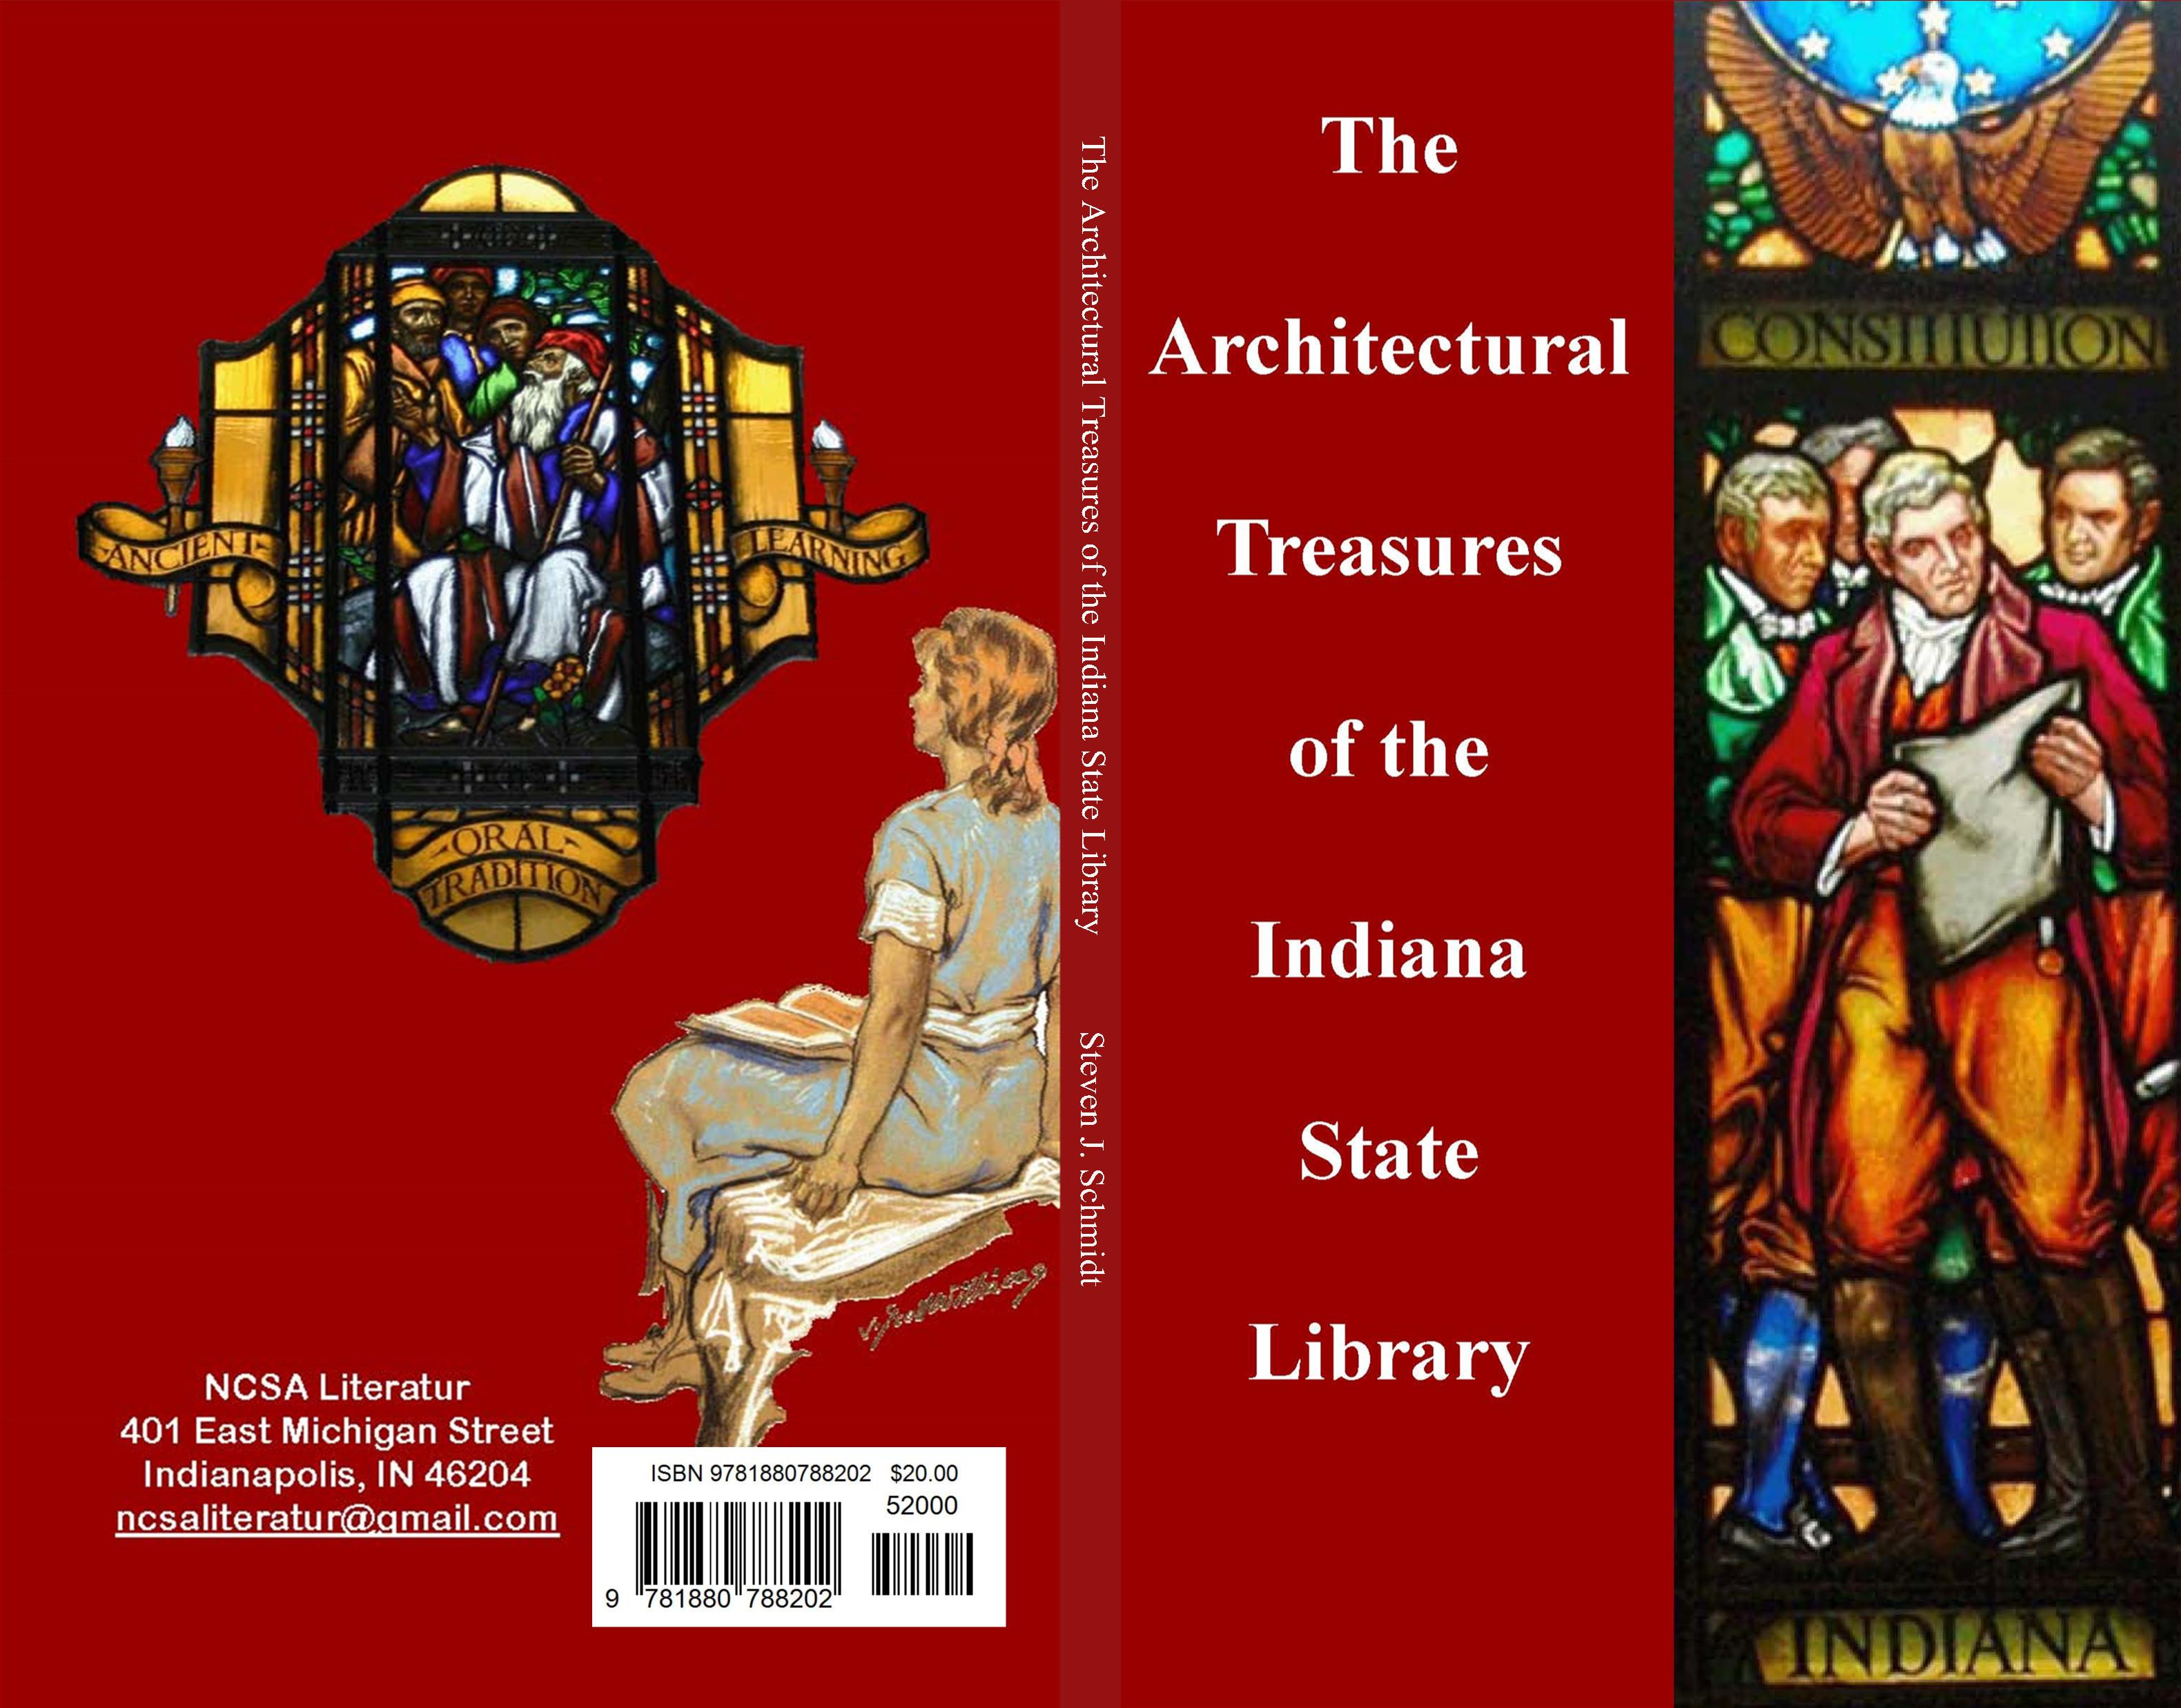 The Architectural Treasures of the Indiana State Library cover image